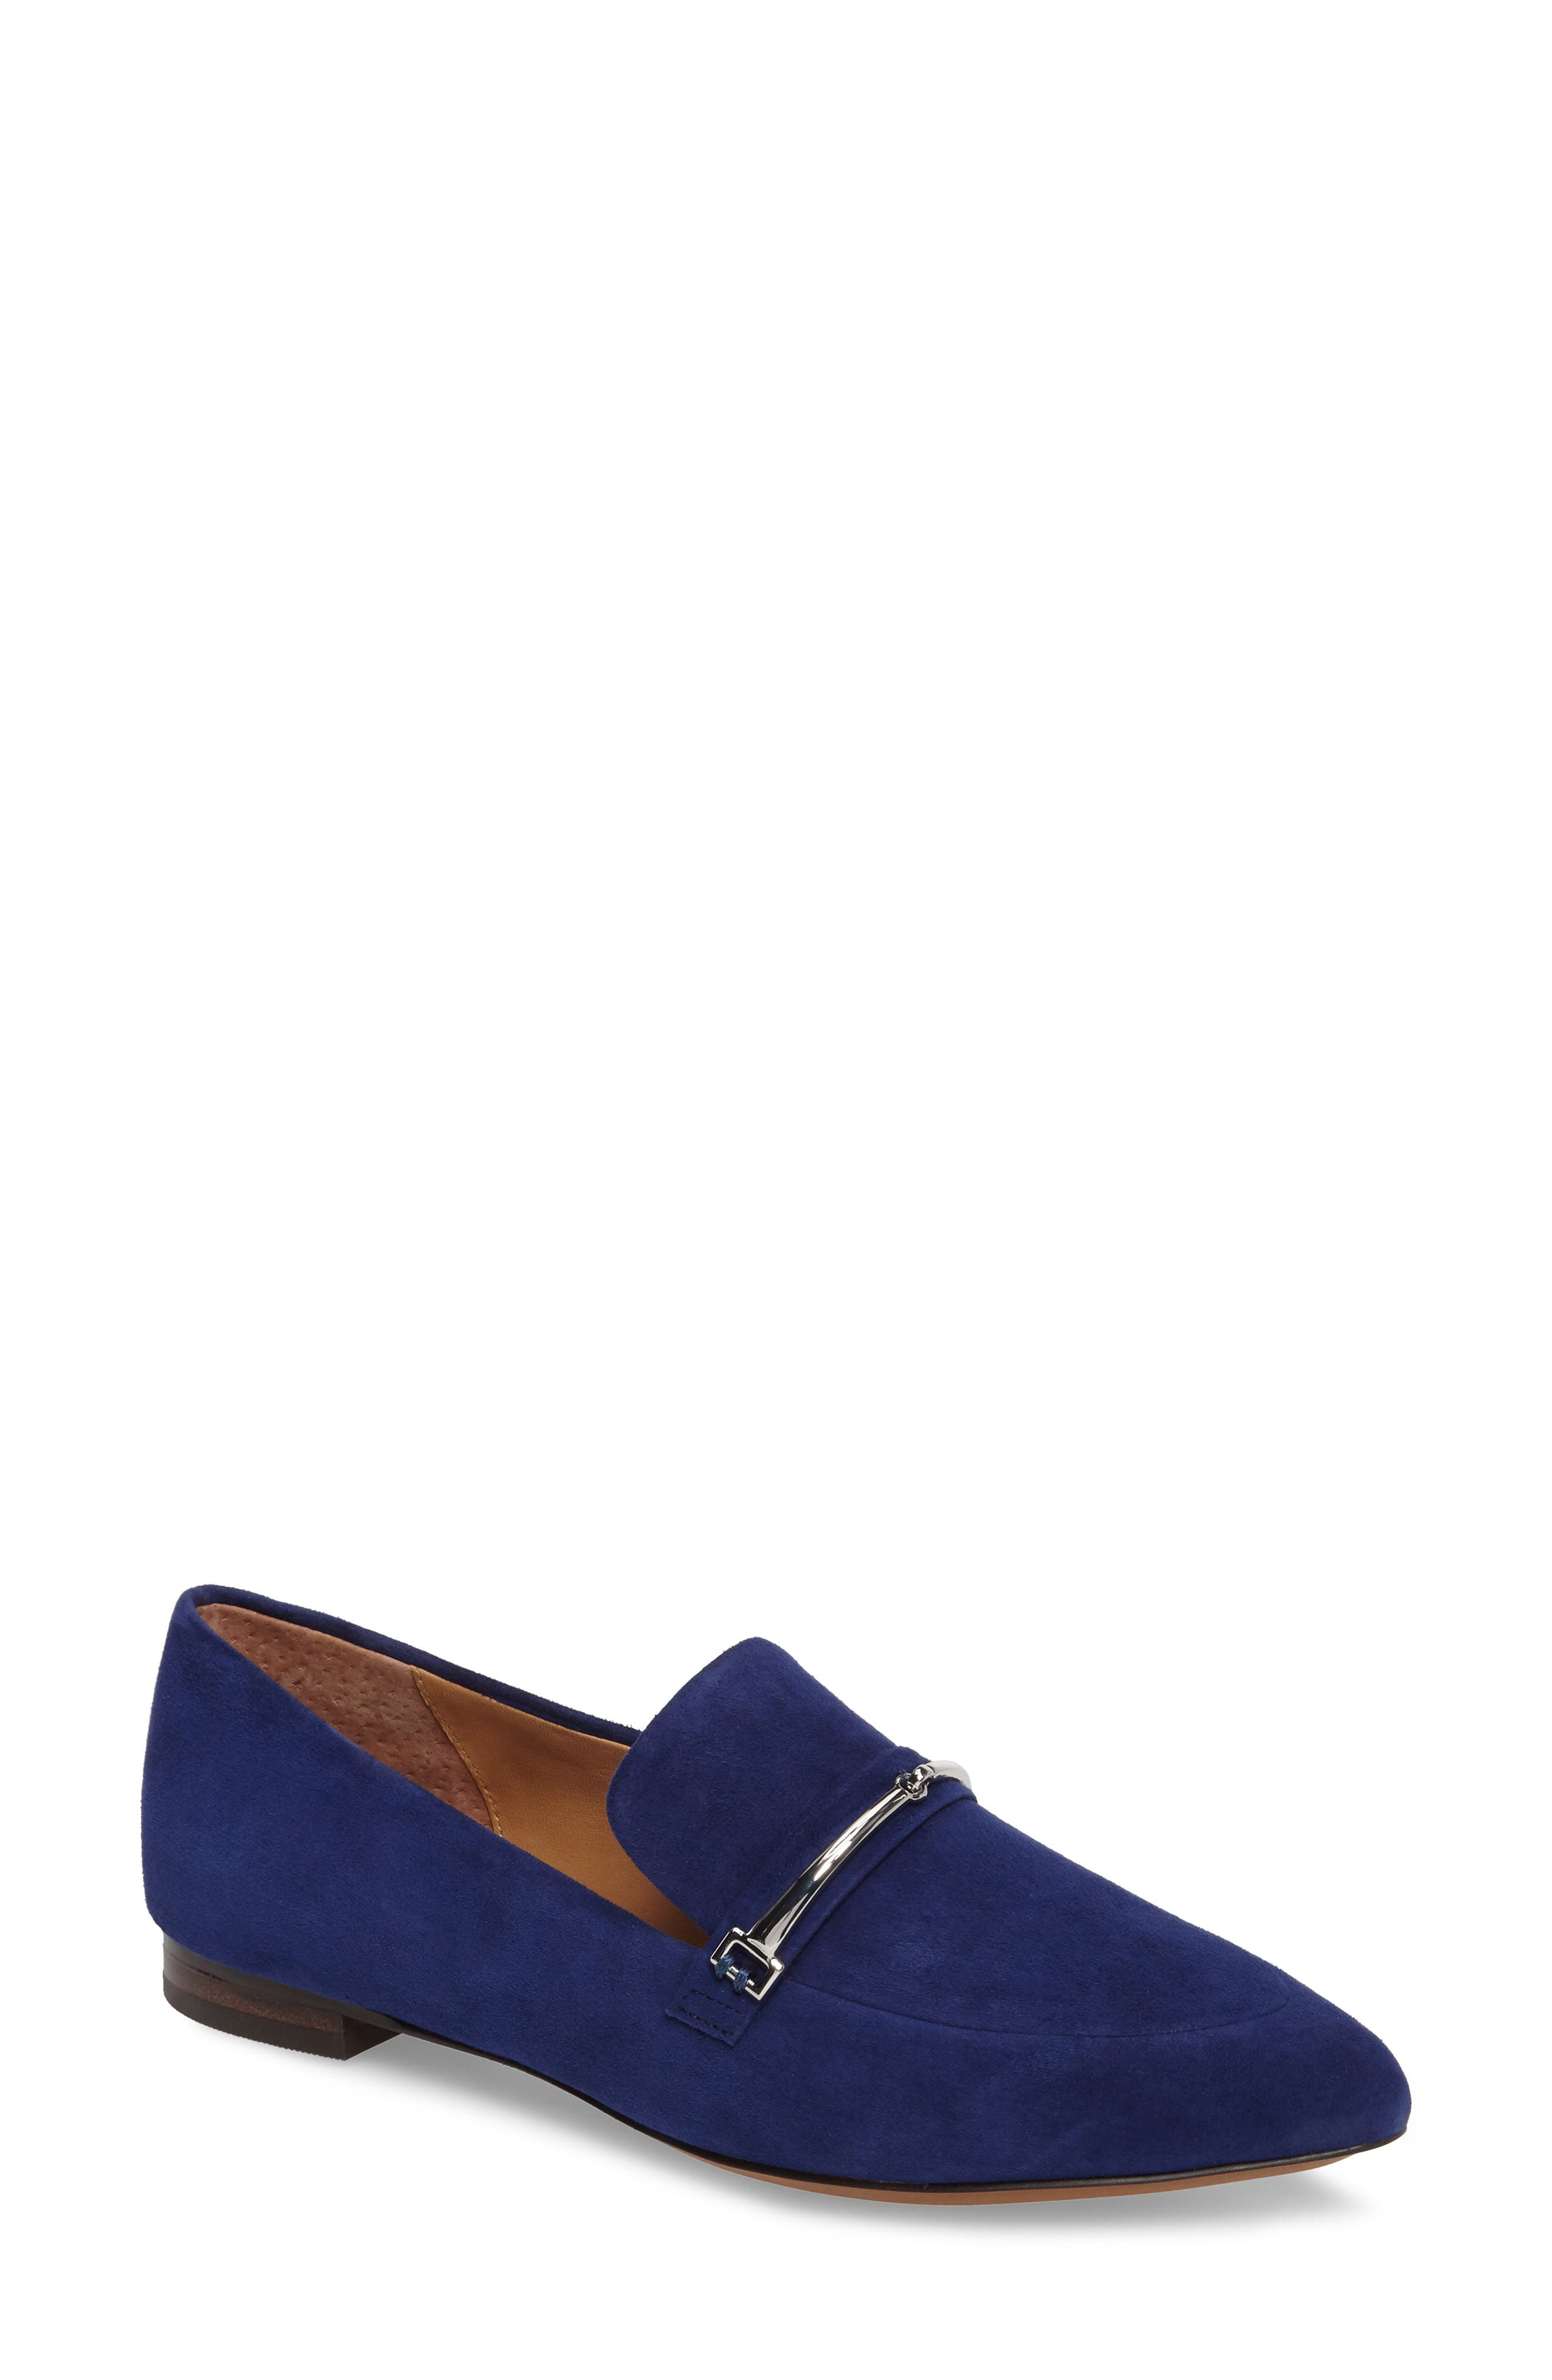 Alternate Image 1 Selected - Linea Paolo Molly Loafer (Women)